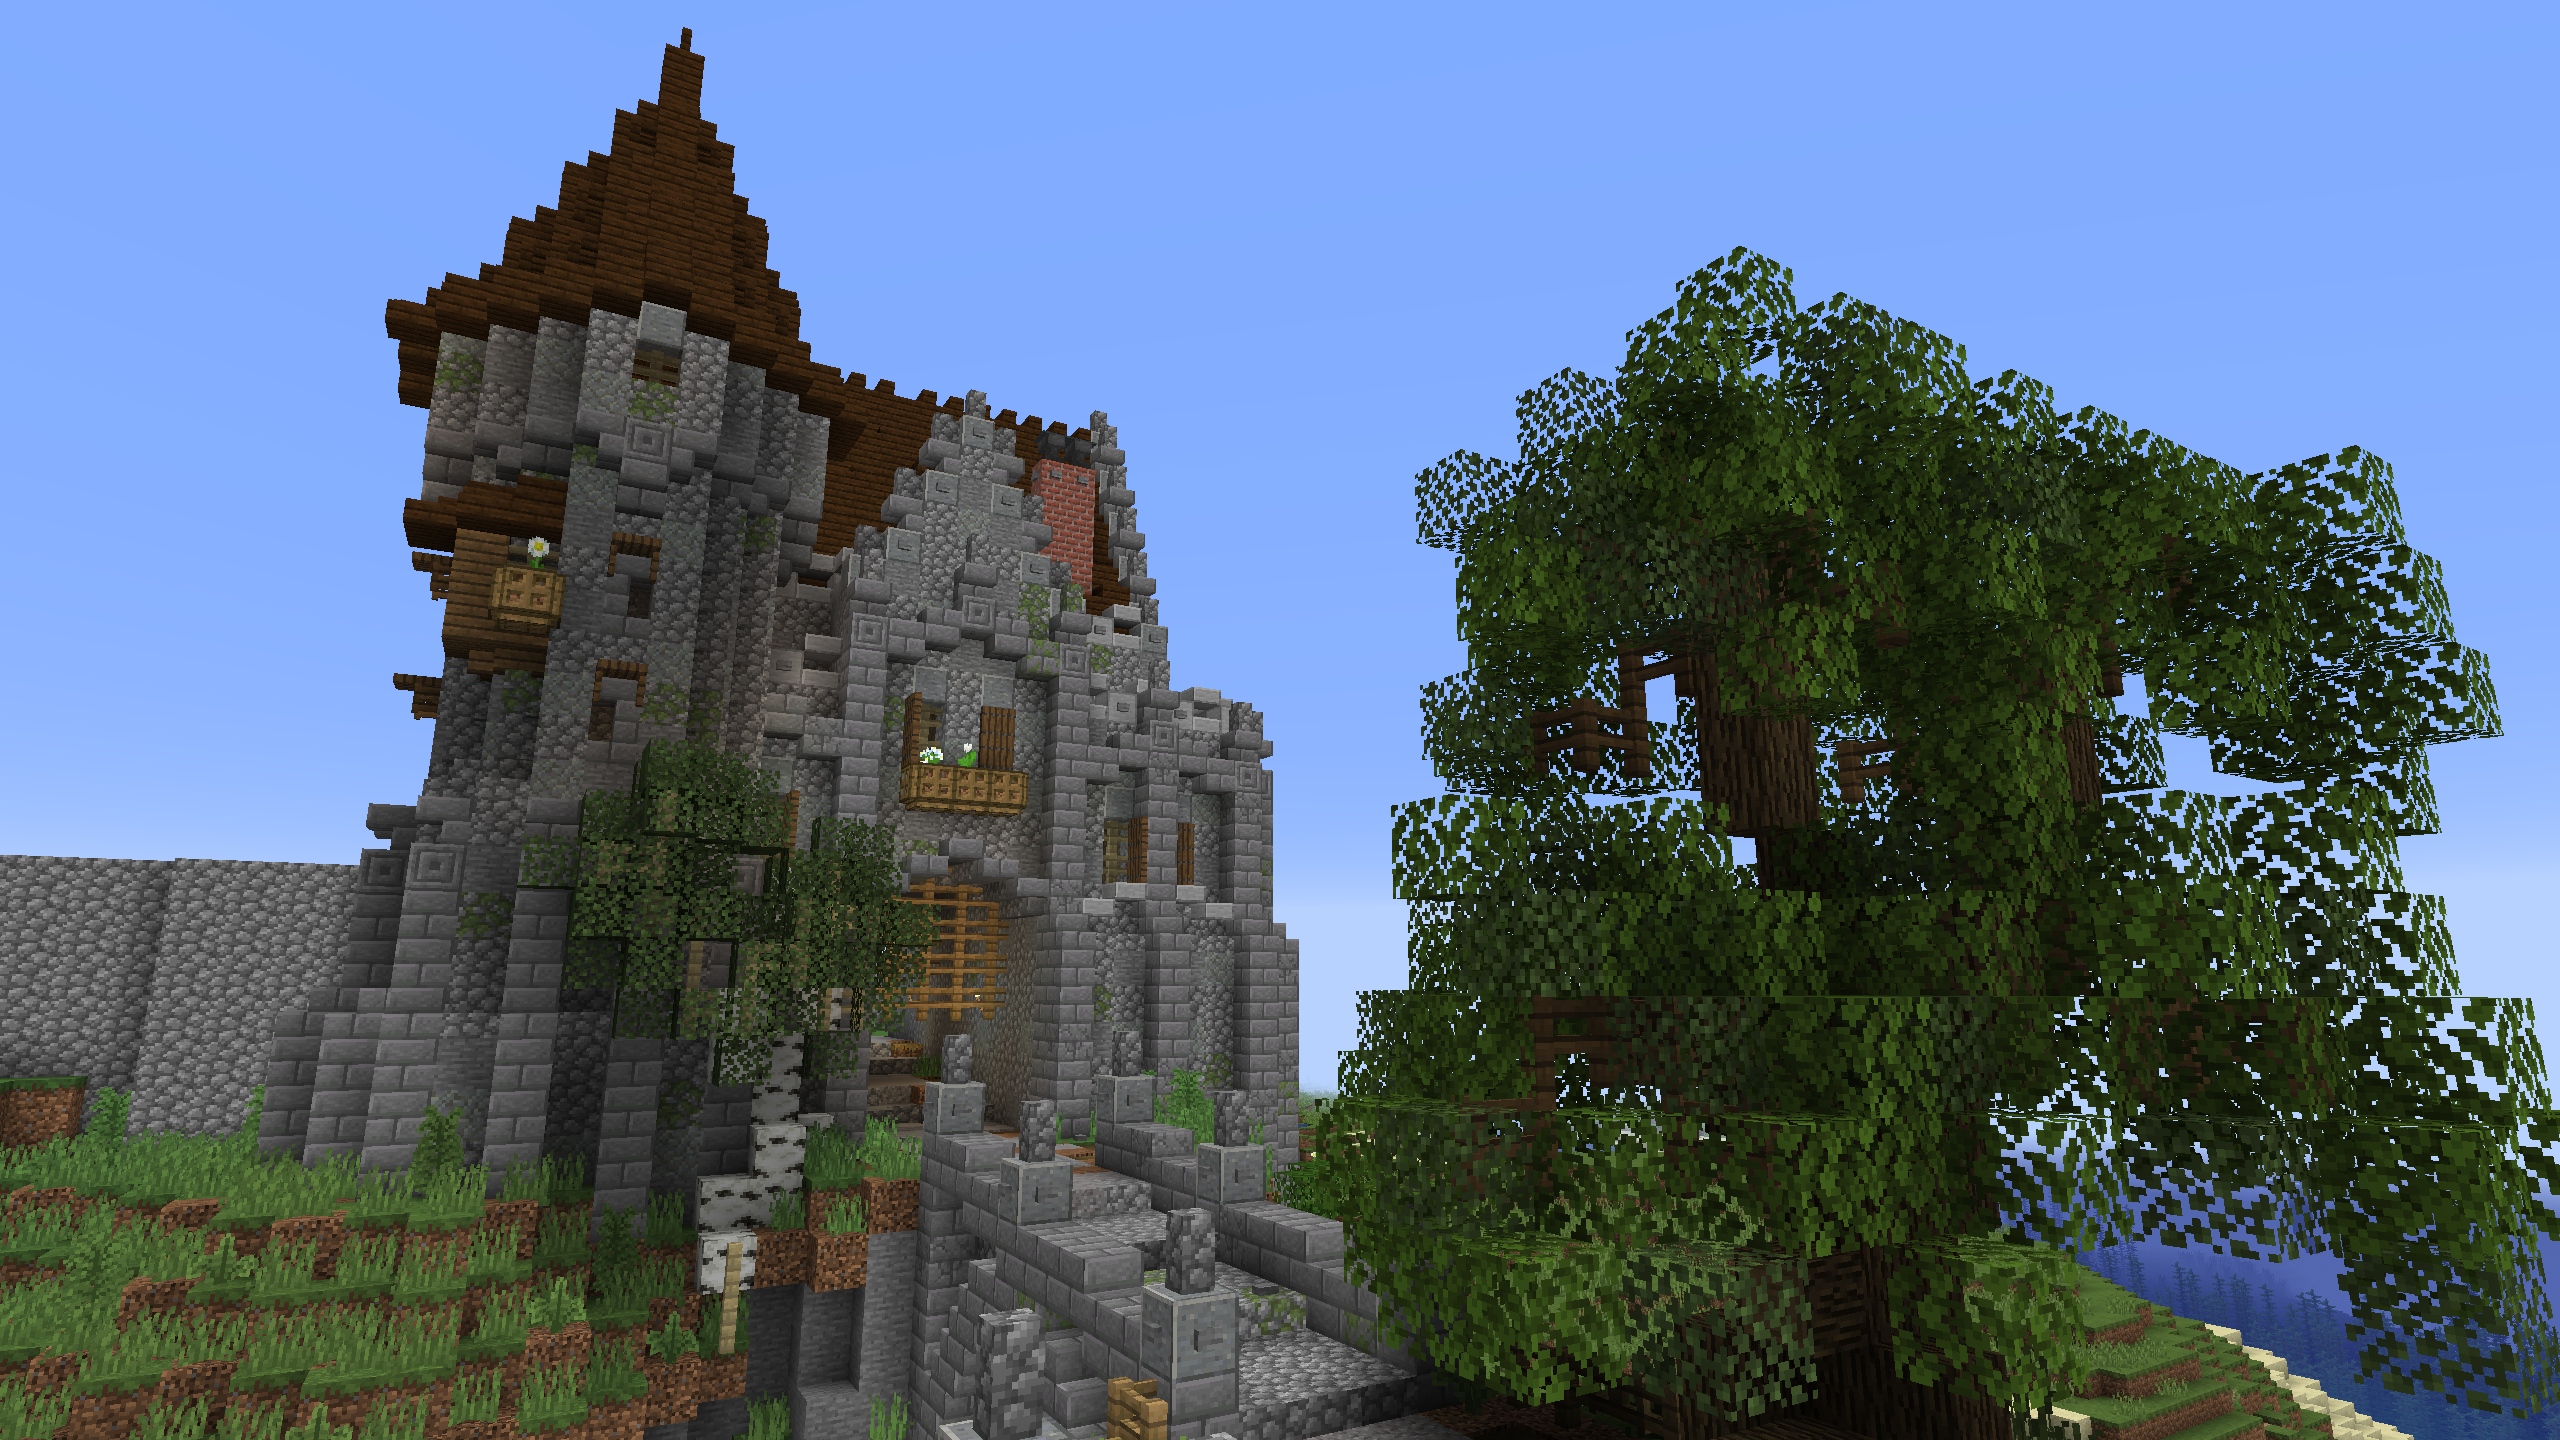 Pin By Oliver Moore On Minecraft Inspiration